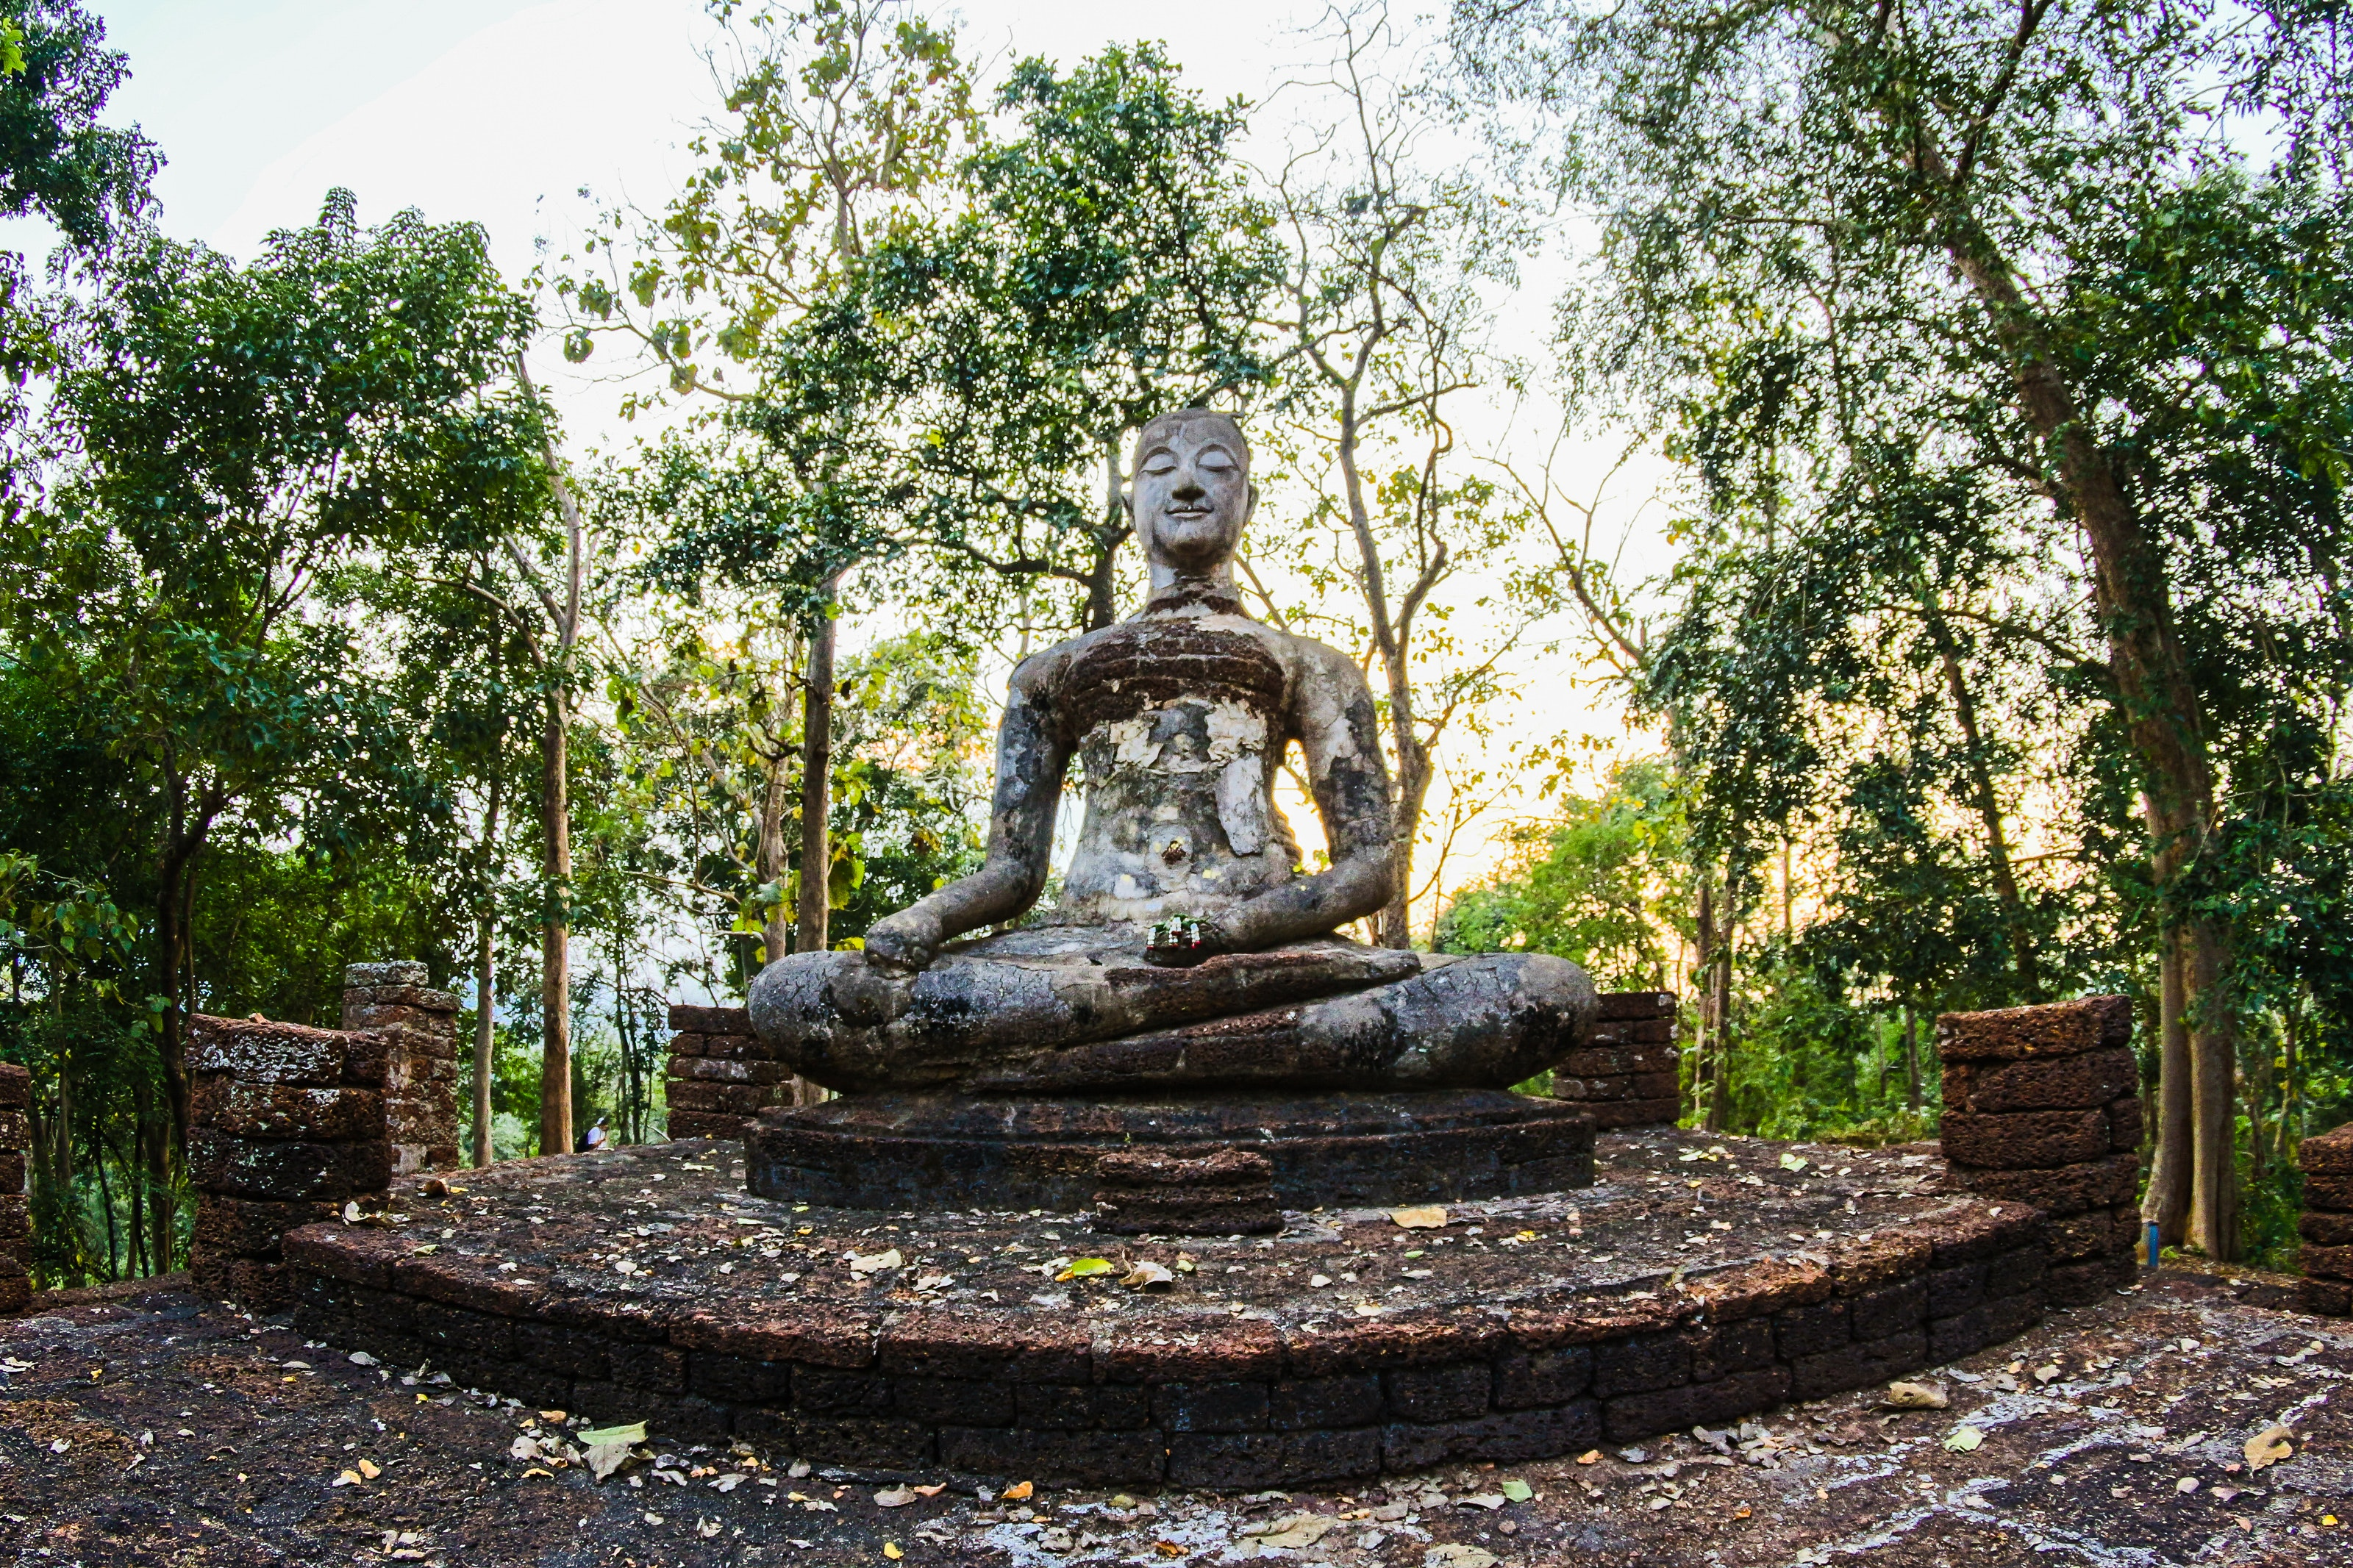 Religious Statue Surrounded by Green Trees, Ancient, Structure, Sculpture, Spiritual, HQ Photo